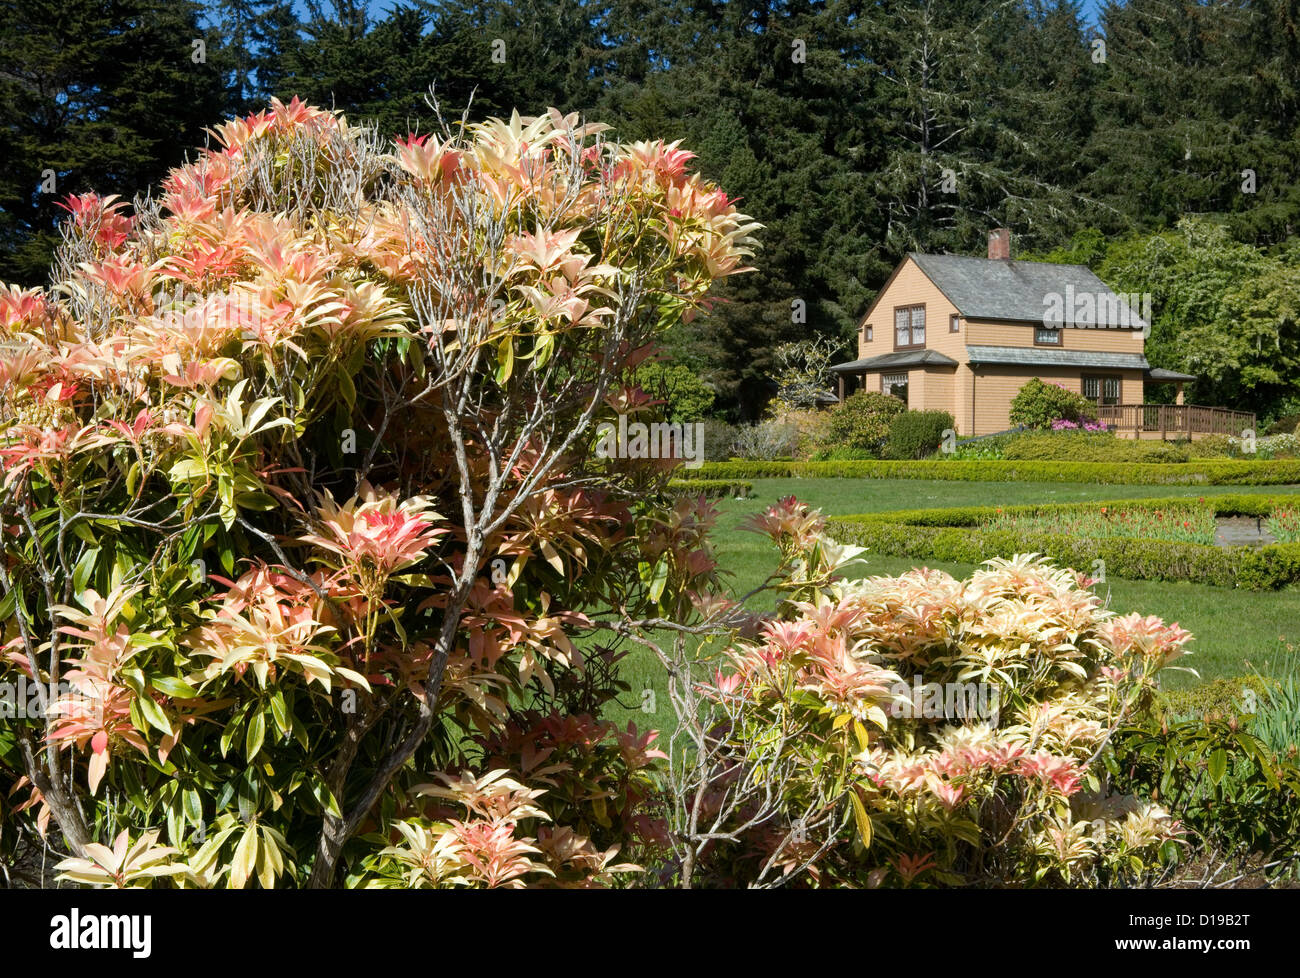 OR00654-00...OREGON - Garden house and formal gardens at Shore Acres State Park on the Pacific Coast near Charleston. - Stock Image